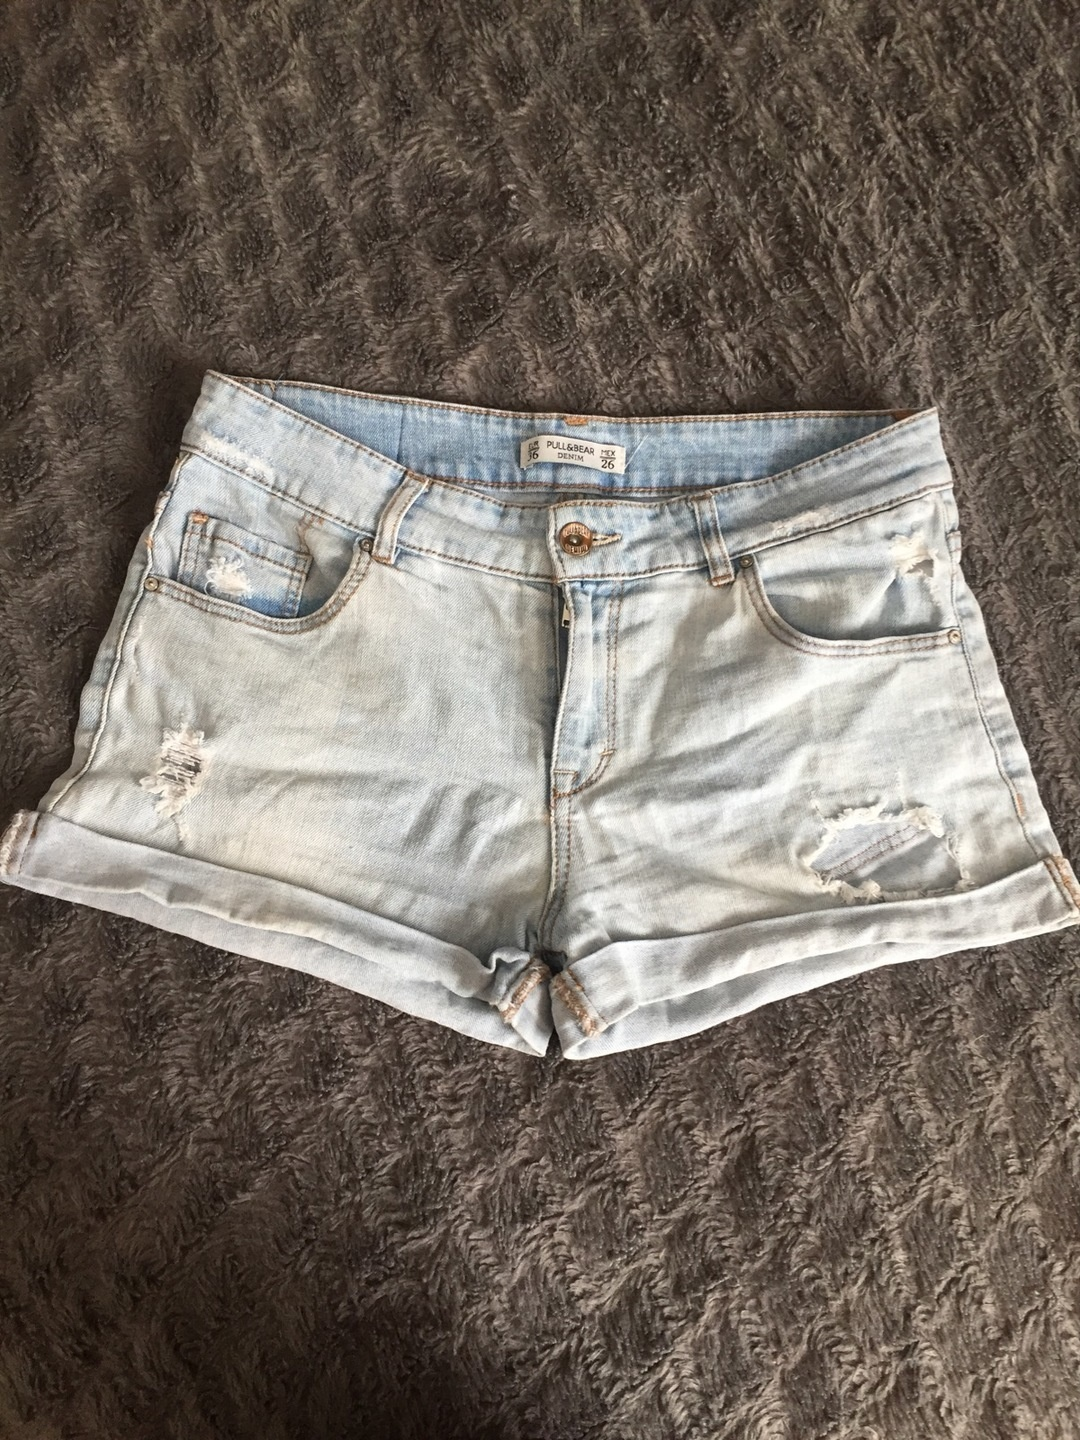 Damers shorts - PULL&BEAR photo 1